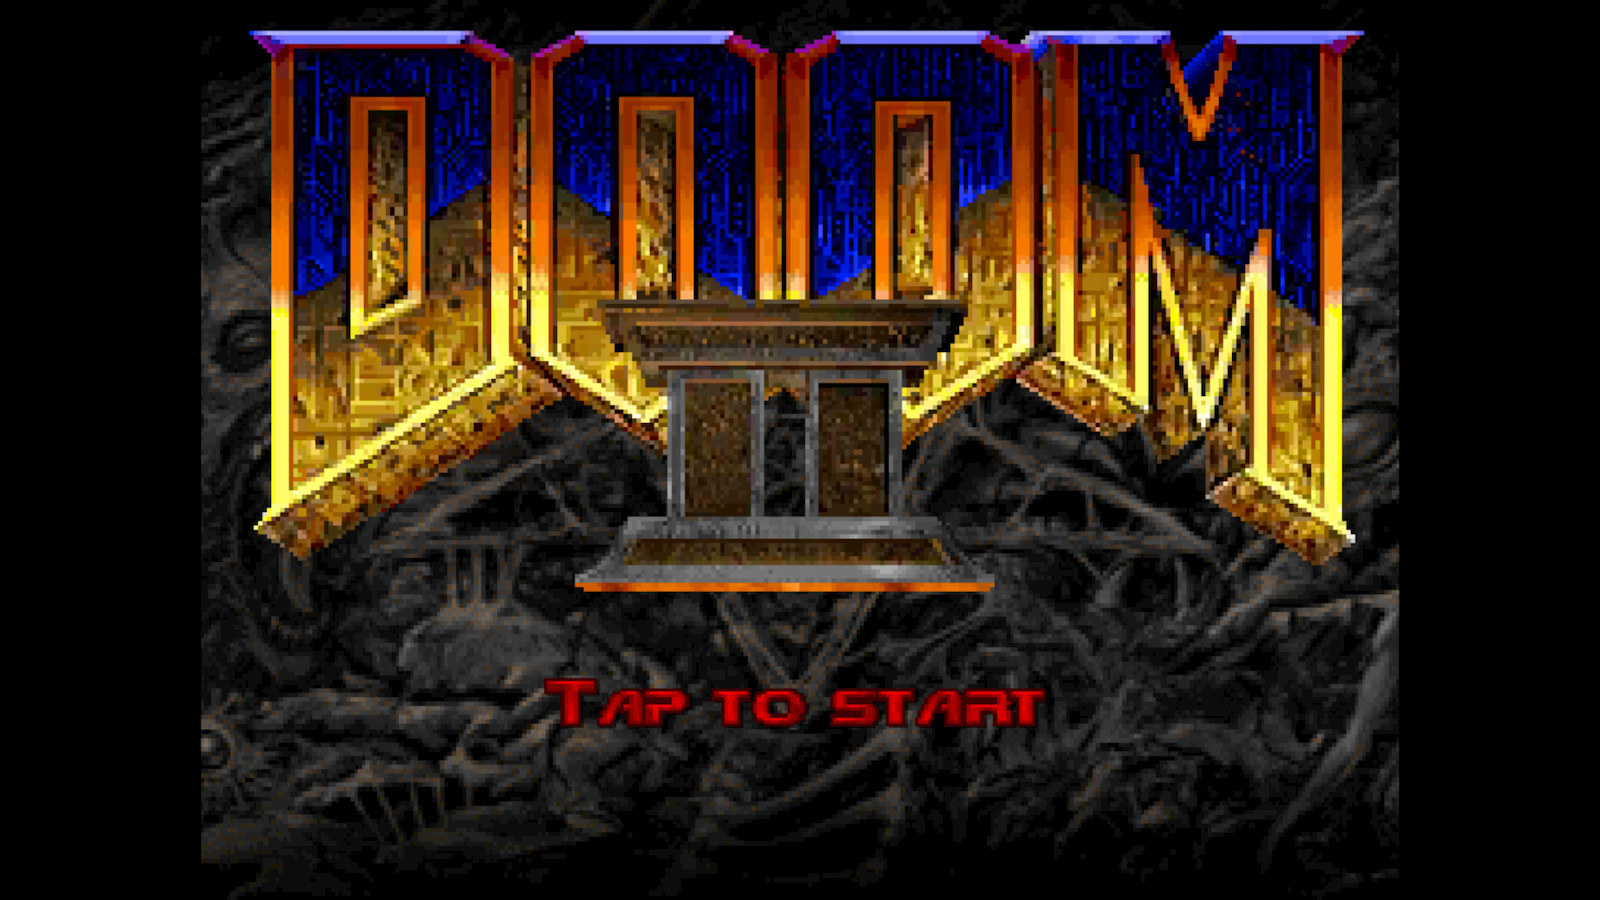 Chromebook Perks adds three premium games including the iconic Doom & Doom II